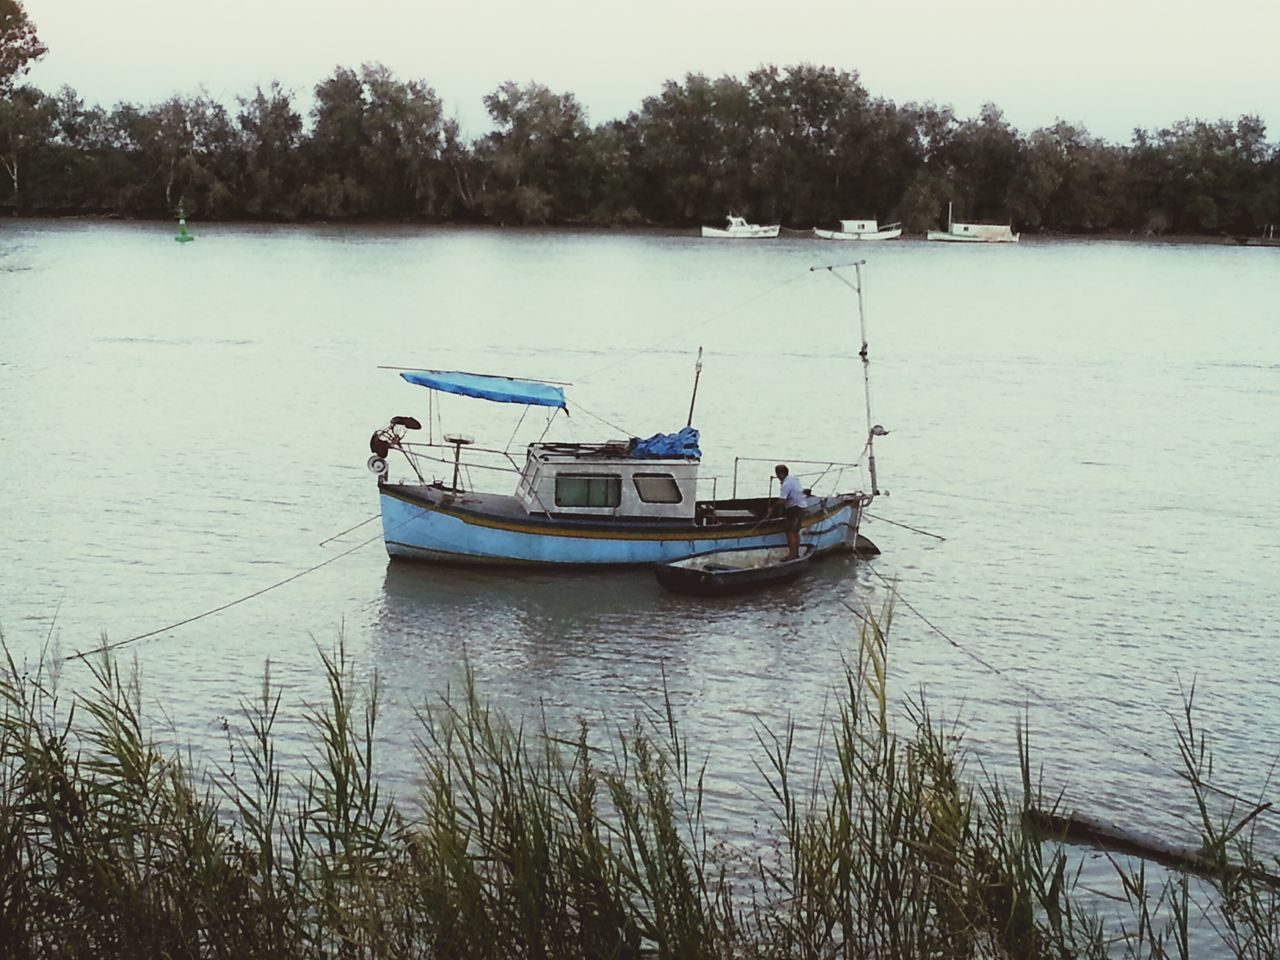 Nautical Vessel Water Lake Tree Outdoors Nature Moored People Beauty In Nature Sky Cloudy Afternoon Afternoon Sky Afternoon Blues River Guadalquivir Ship Shiplife Shipping  Ships On The Water Ship In The River